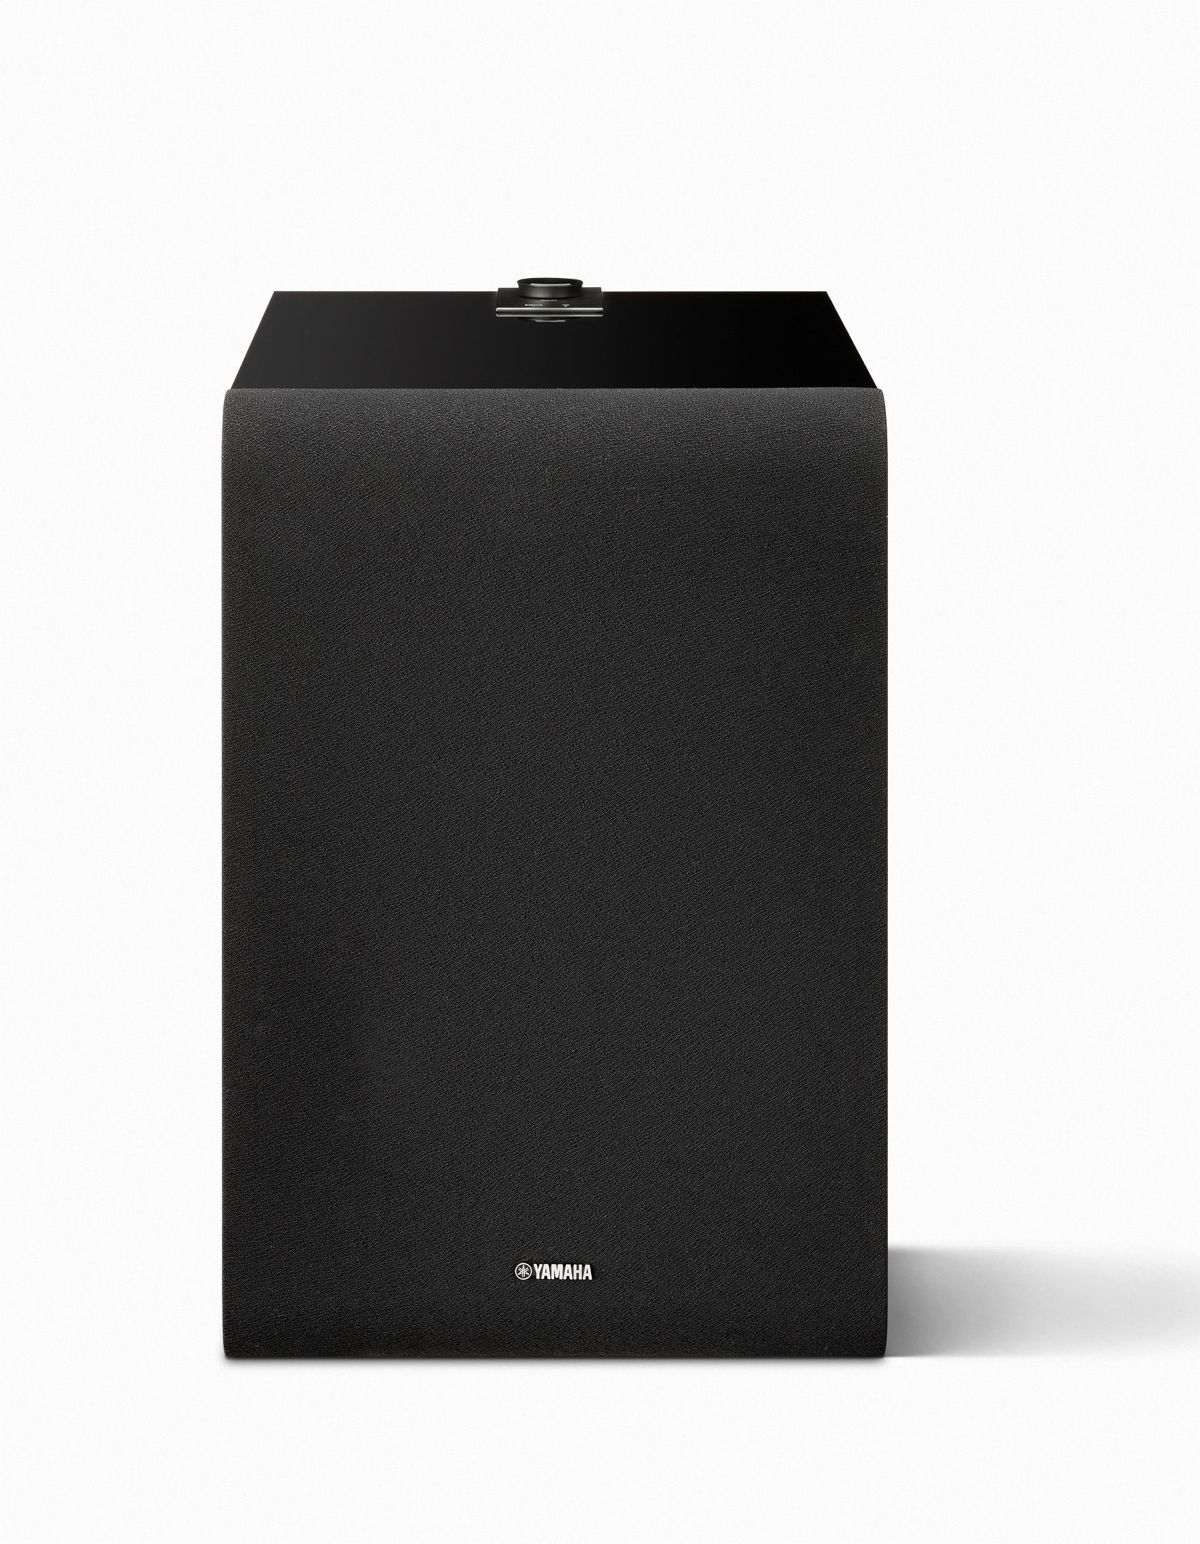 yamaha musiccast sub 100 wireless subwoofer. Black Bedroom Furniture Sets. Home Design Ideas